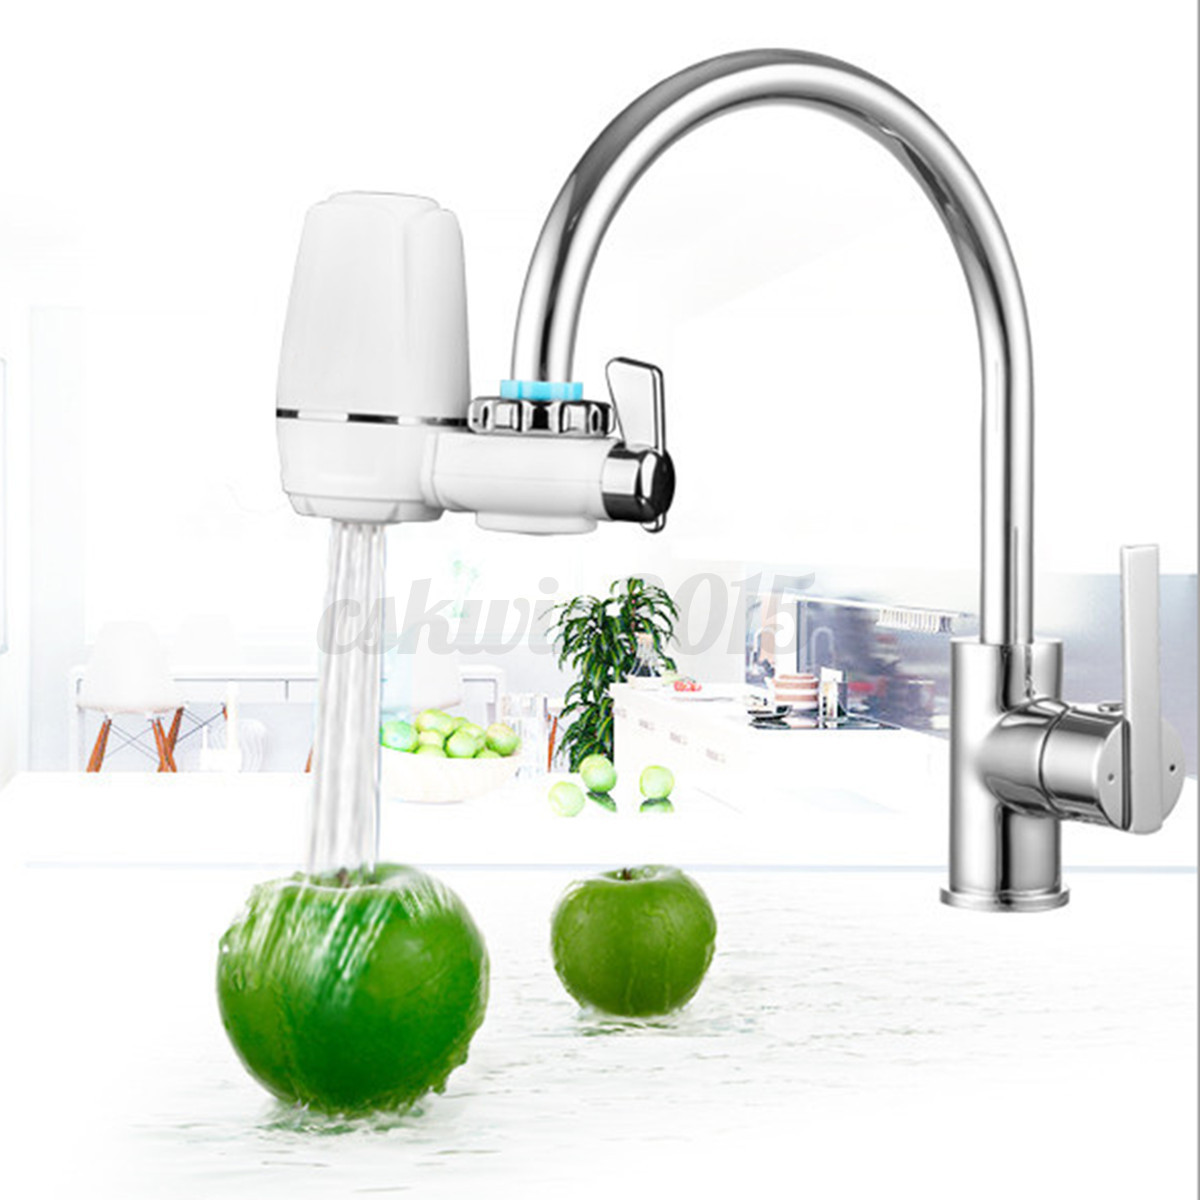 Faucet Tap Water Filter Ceramic Faucet Mount Water Purifier For ...